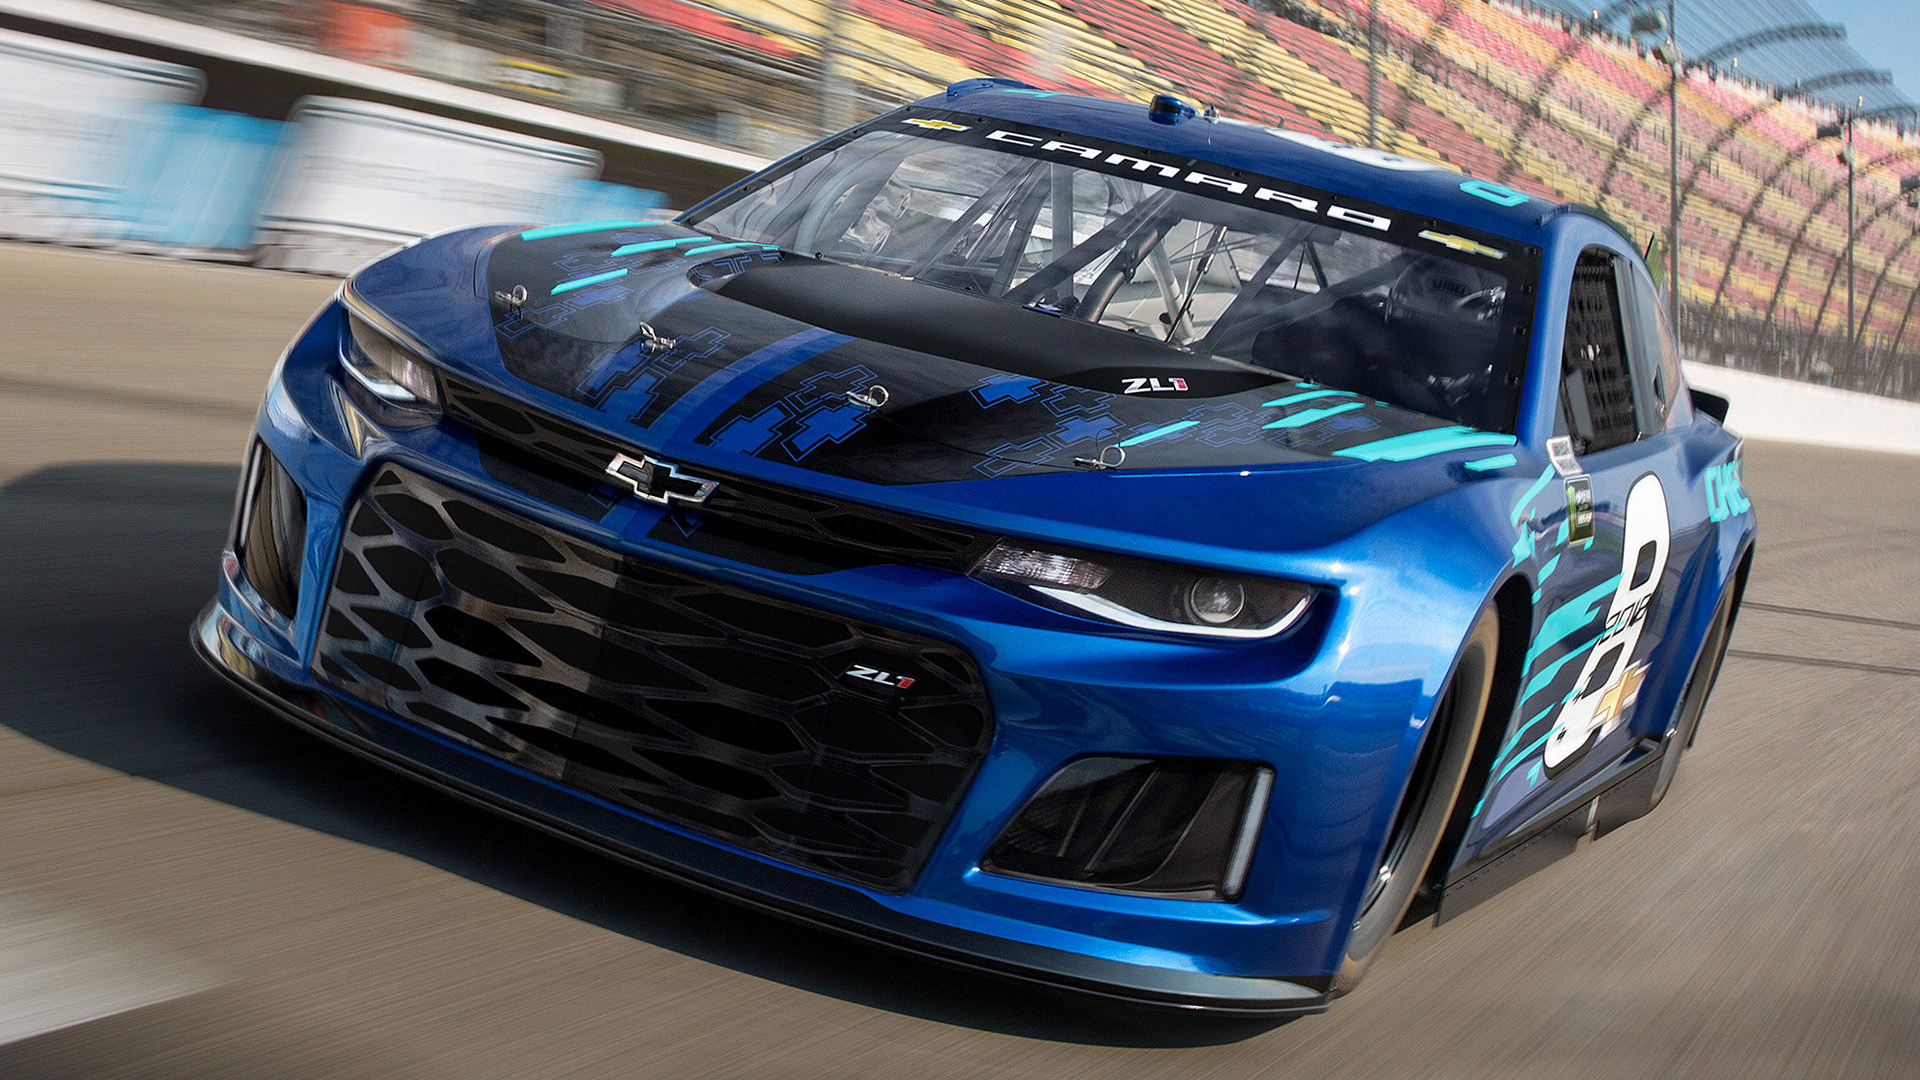 Chevrolet Camaro Zl1 Nascar Cup Series 2018 Wallpapers